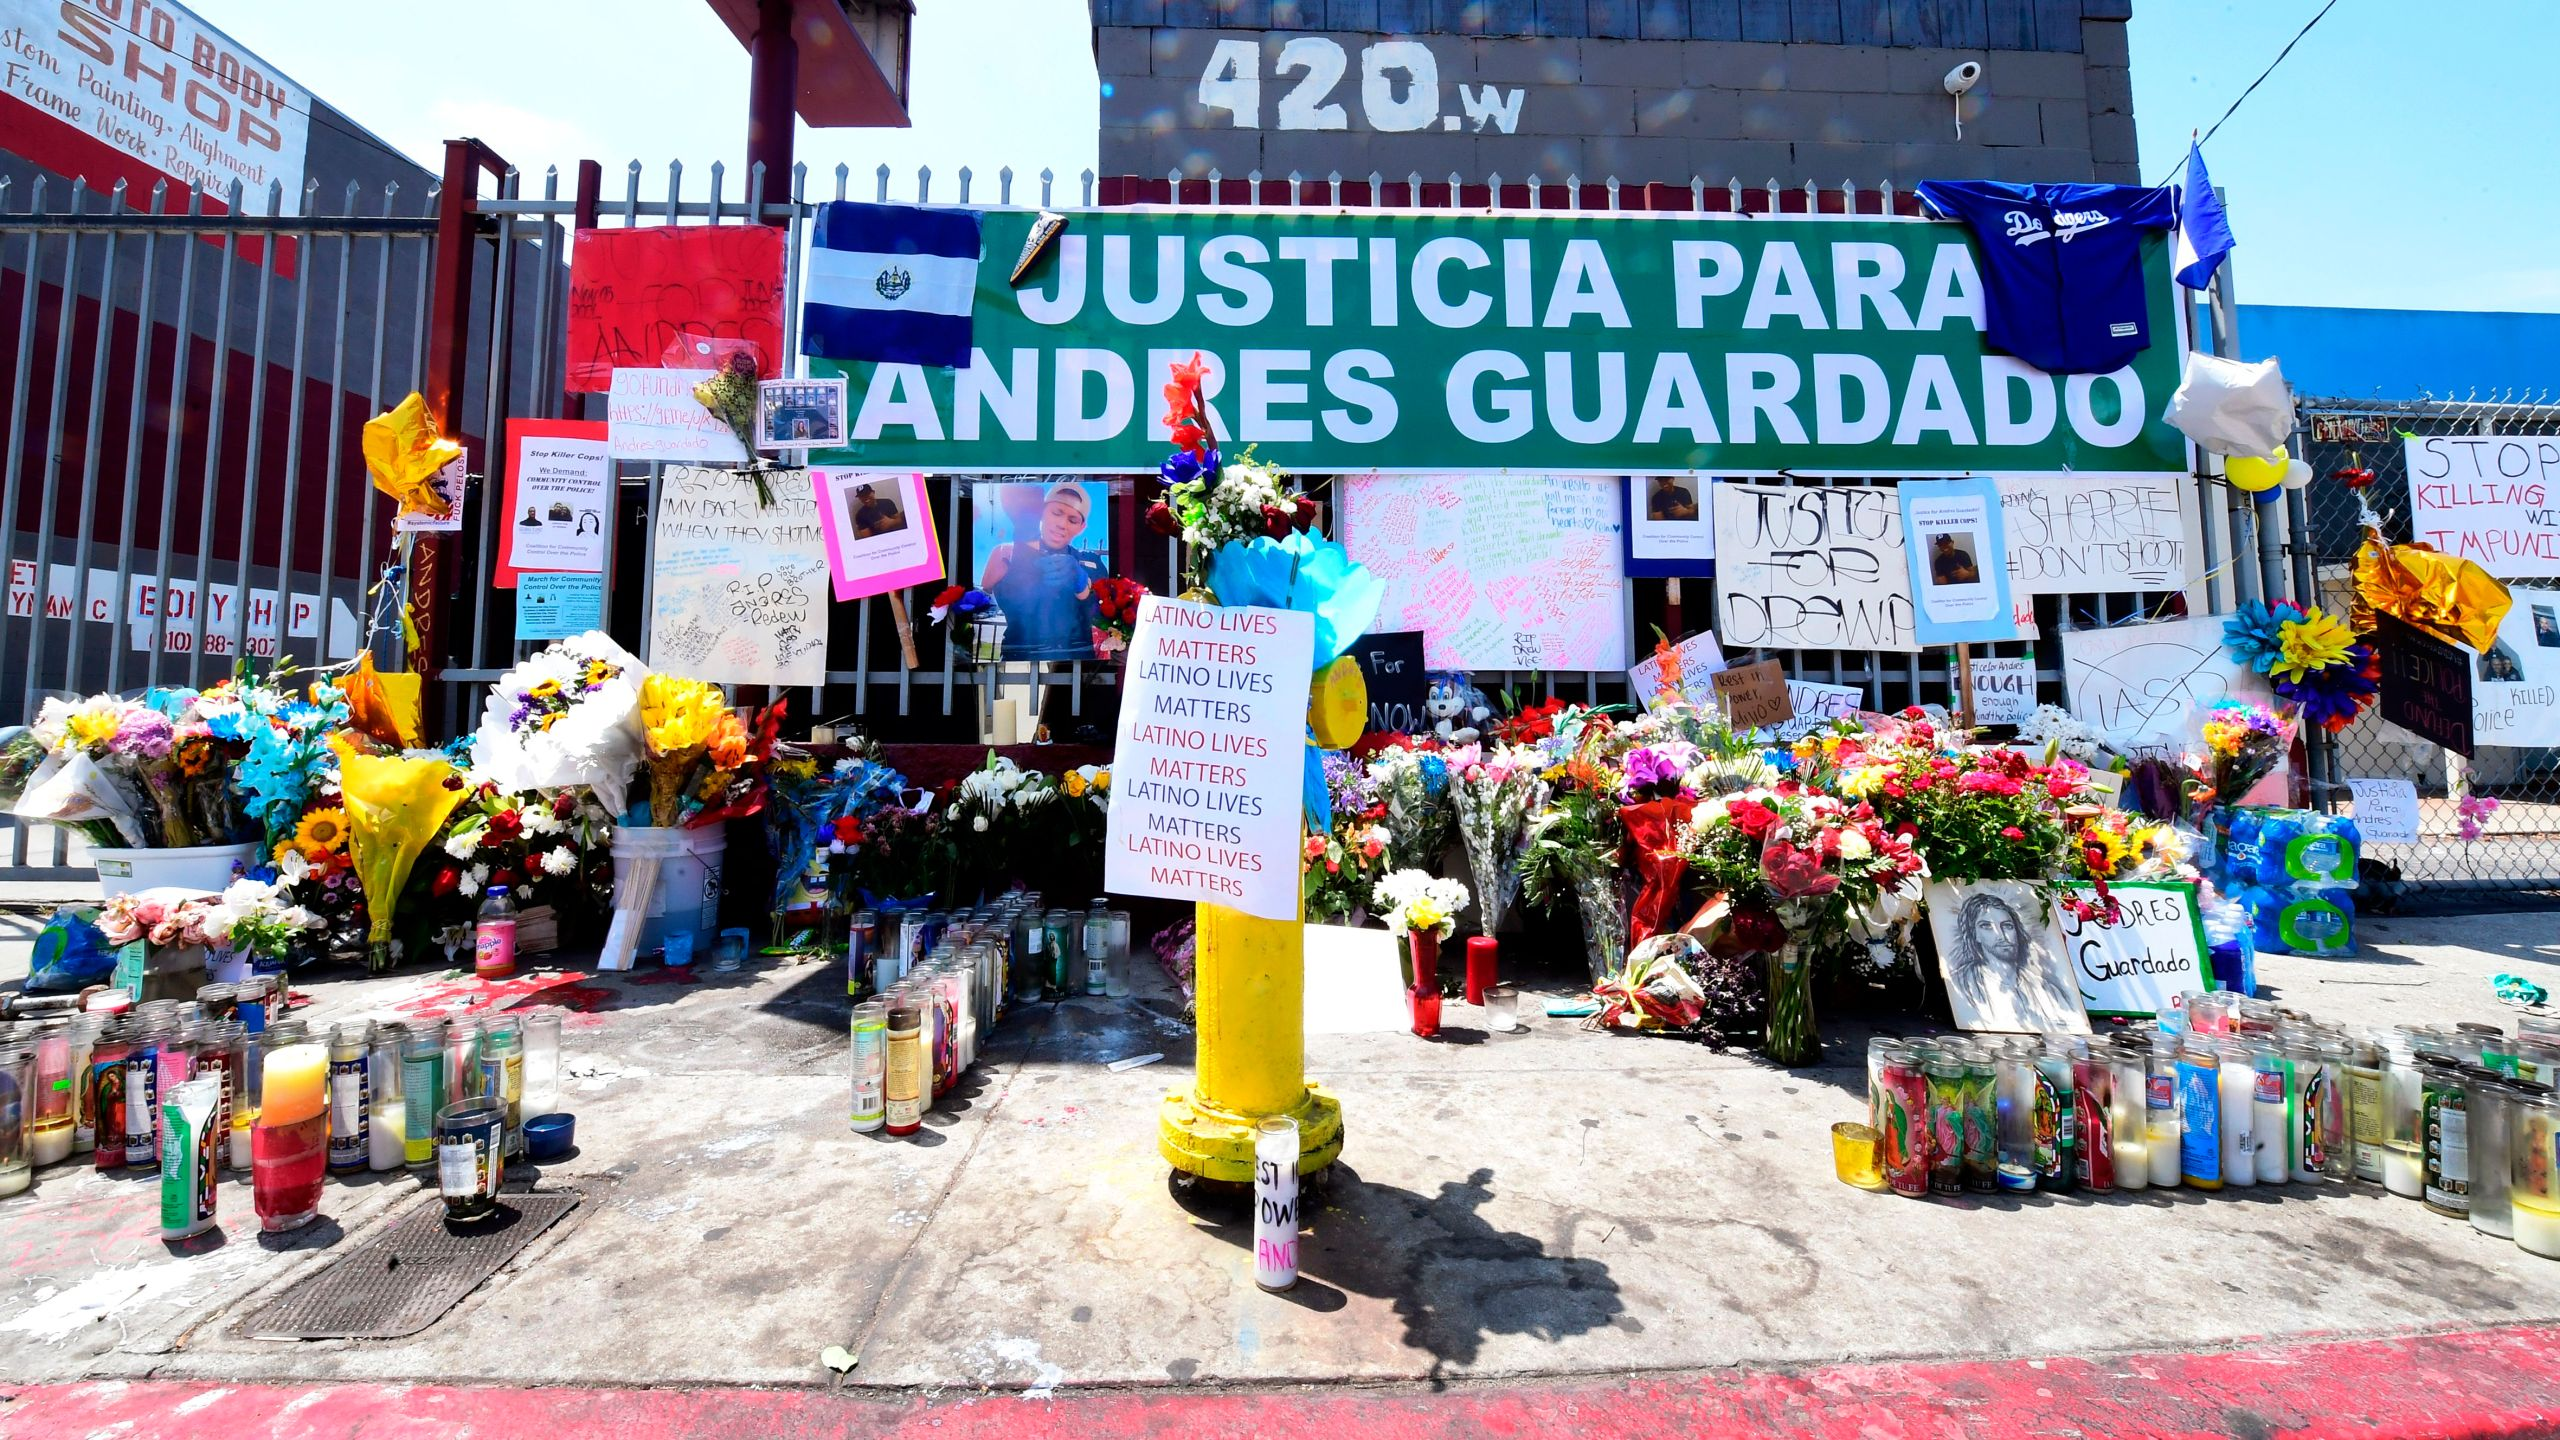 A makeshift memorial for Andres Guardado is seen on June 23, 2020 in Gardena, California near where he was fatally shot by an LA County sheriff's deputy on June 18 after he reportedly displayed a handgun. (FREDERIC J. BROWN/AFP via Getty Images)